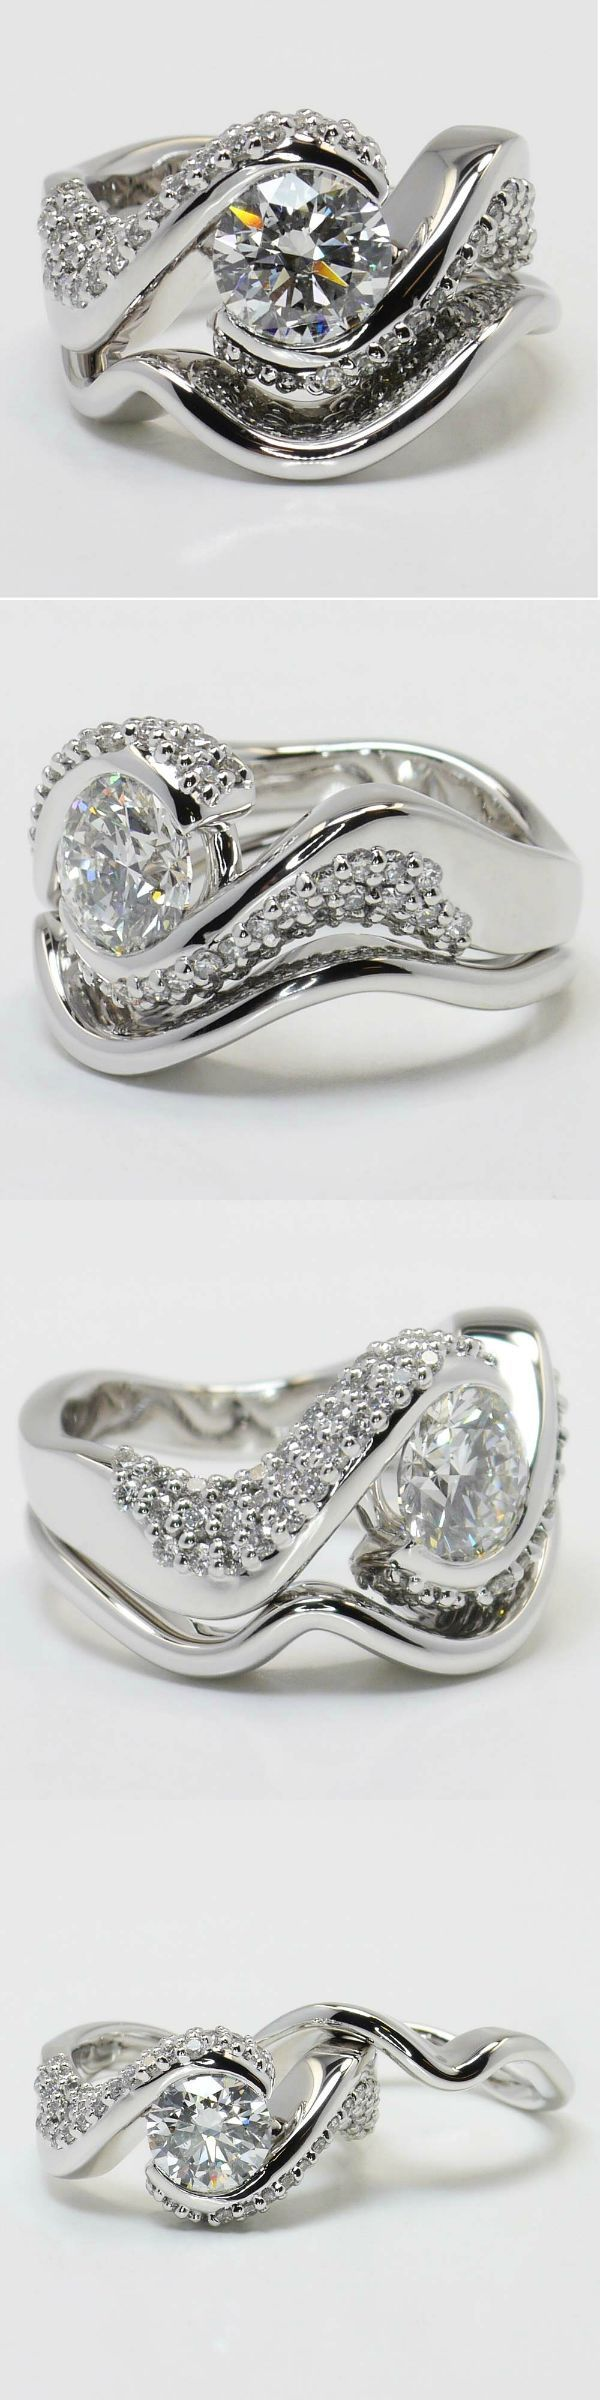 Twisted Diamond Engagement Ring and Matching Band in White Gold! Round 1.61 Ctw. Color: F Clarity: SI1 Cut: Excellent Diamond/Gem Cost: $14,736 Side Carat: 0.93 Side Color: G-H Side Clarity: VS2 Width: Side Cut | Ideal Setting Cost: $4,100 Total Cost: $18,836 www.brilliance.com